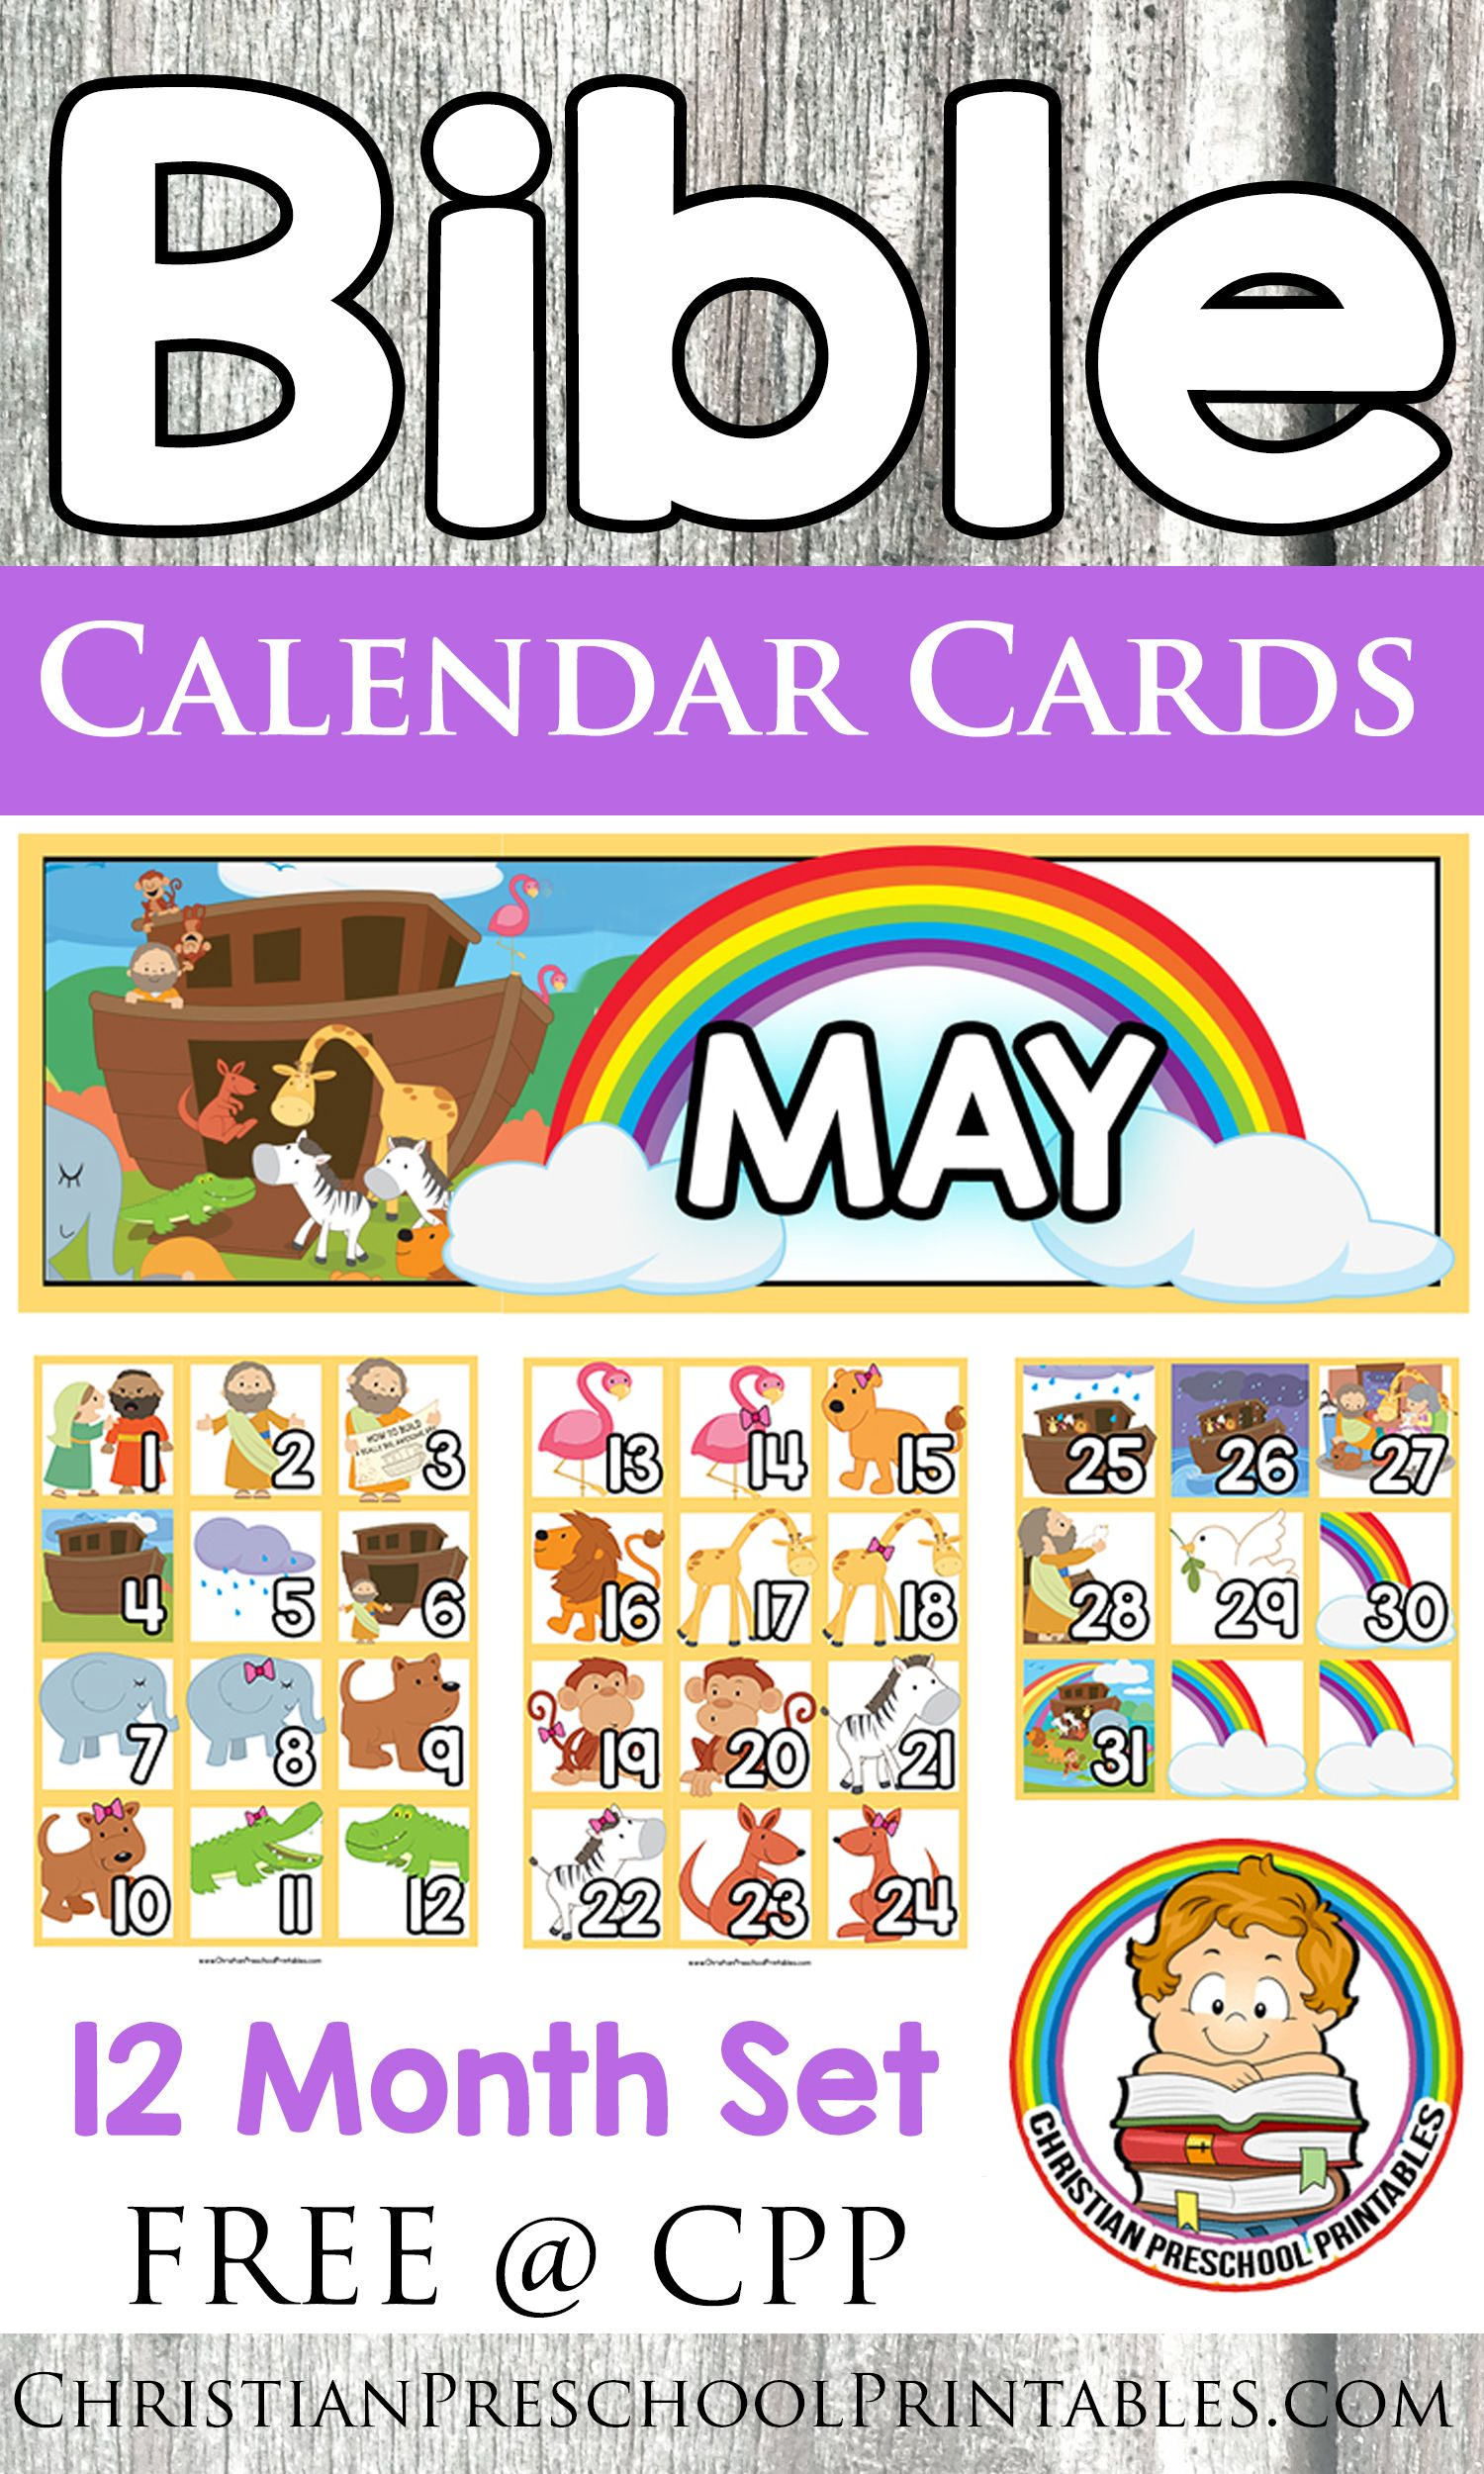 Free Bible Calendar Cards 12 Month Set Of Thematic Bible